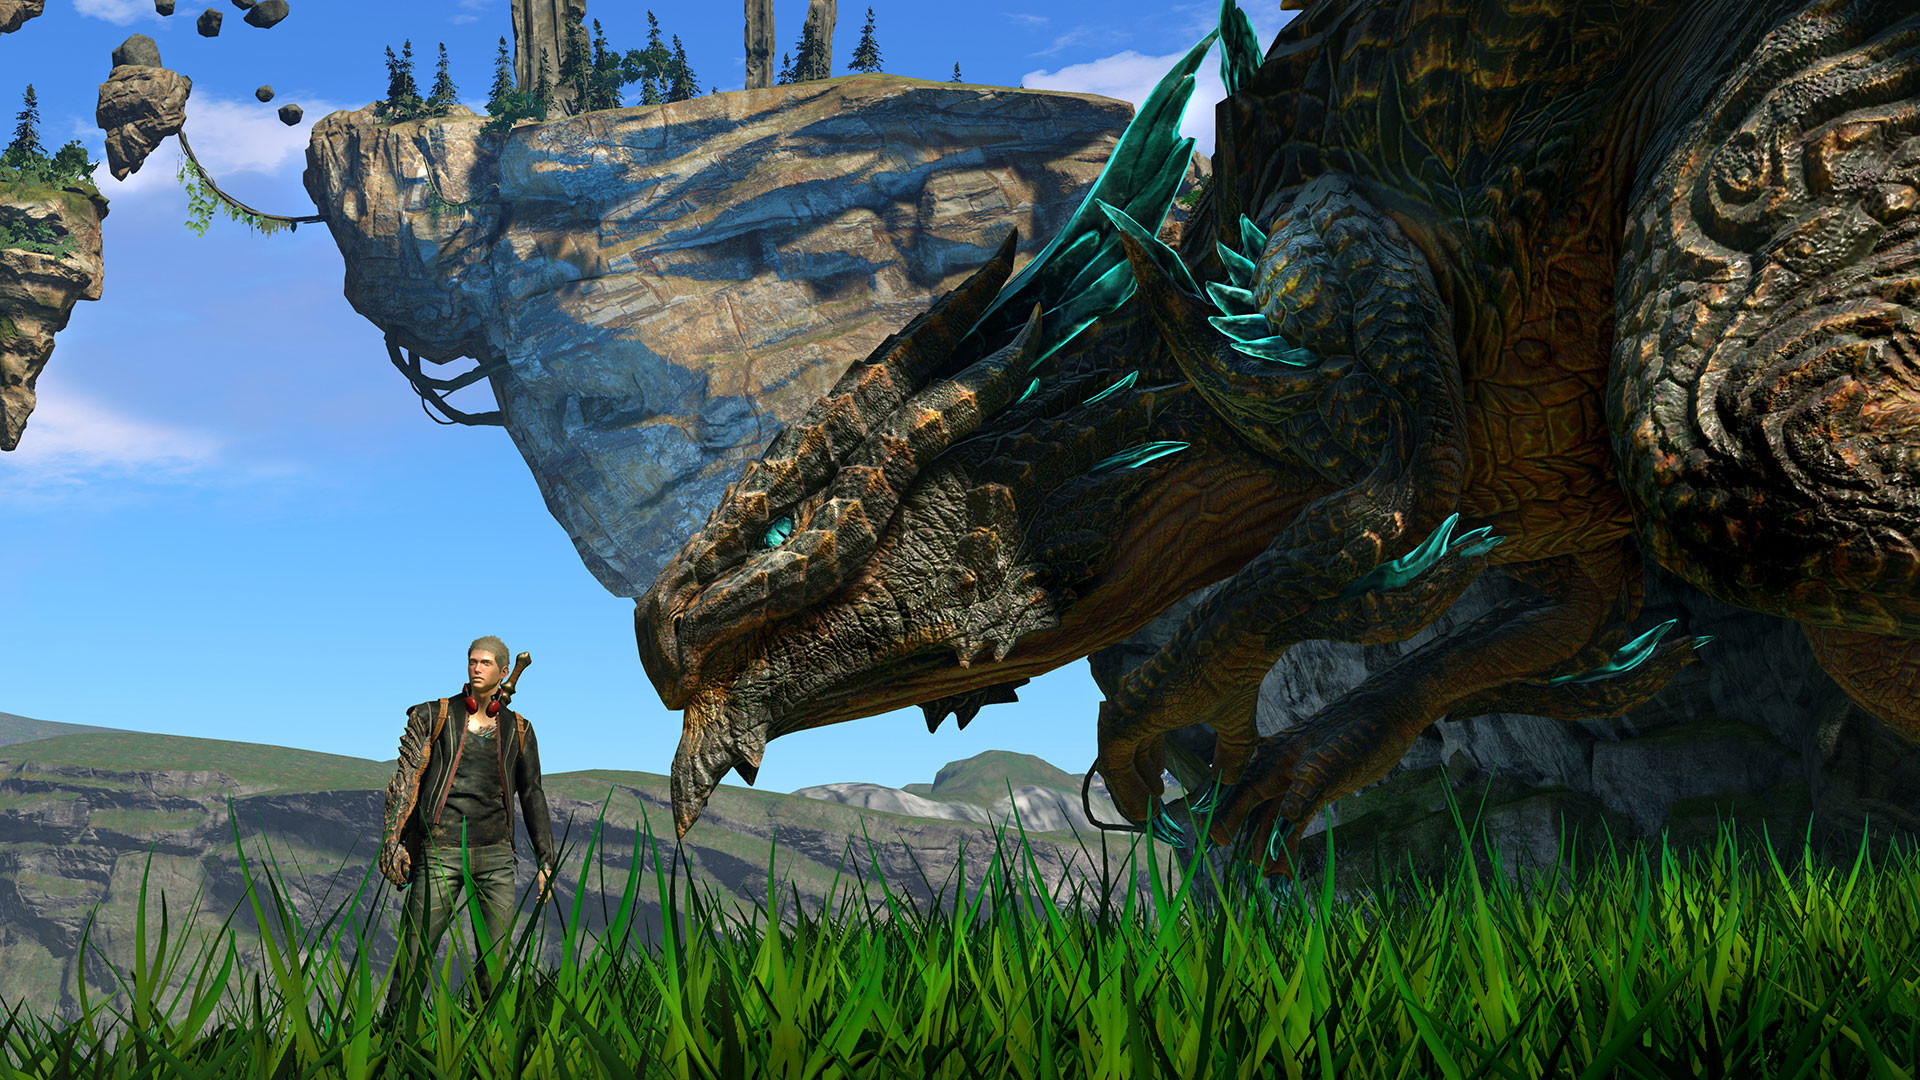 1920x1080 Scalebound 4K Wallpaper | Scalebound 1080p Wallpaper ...